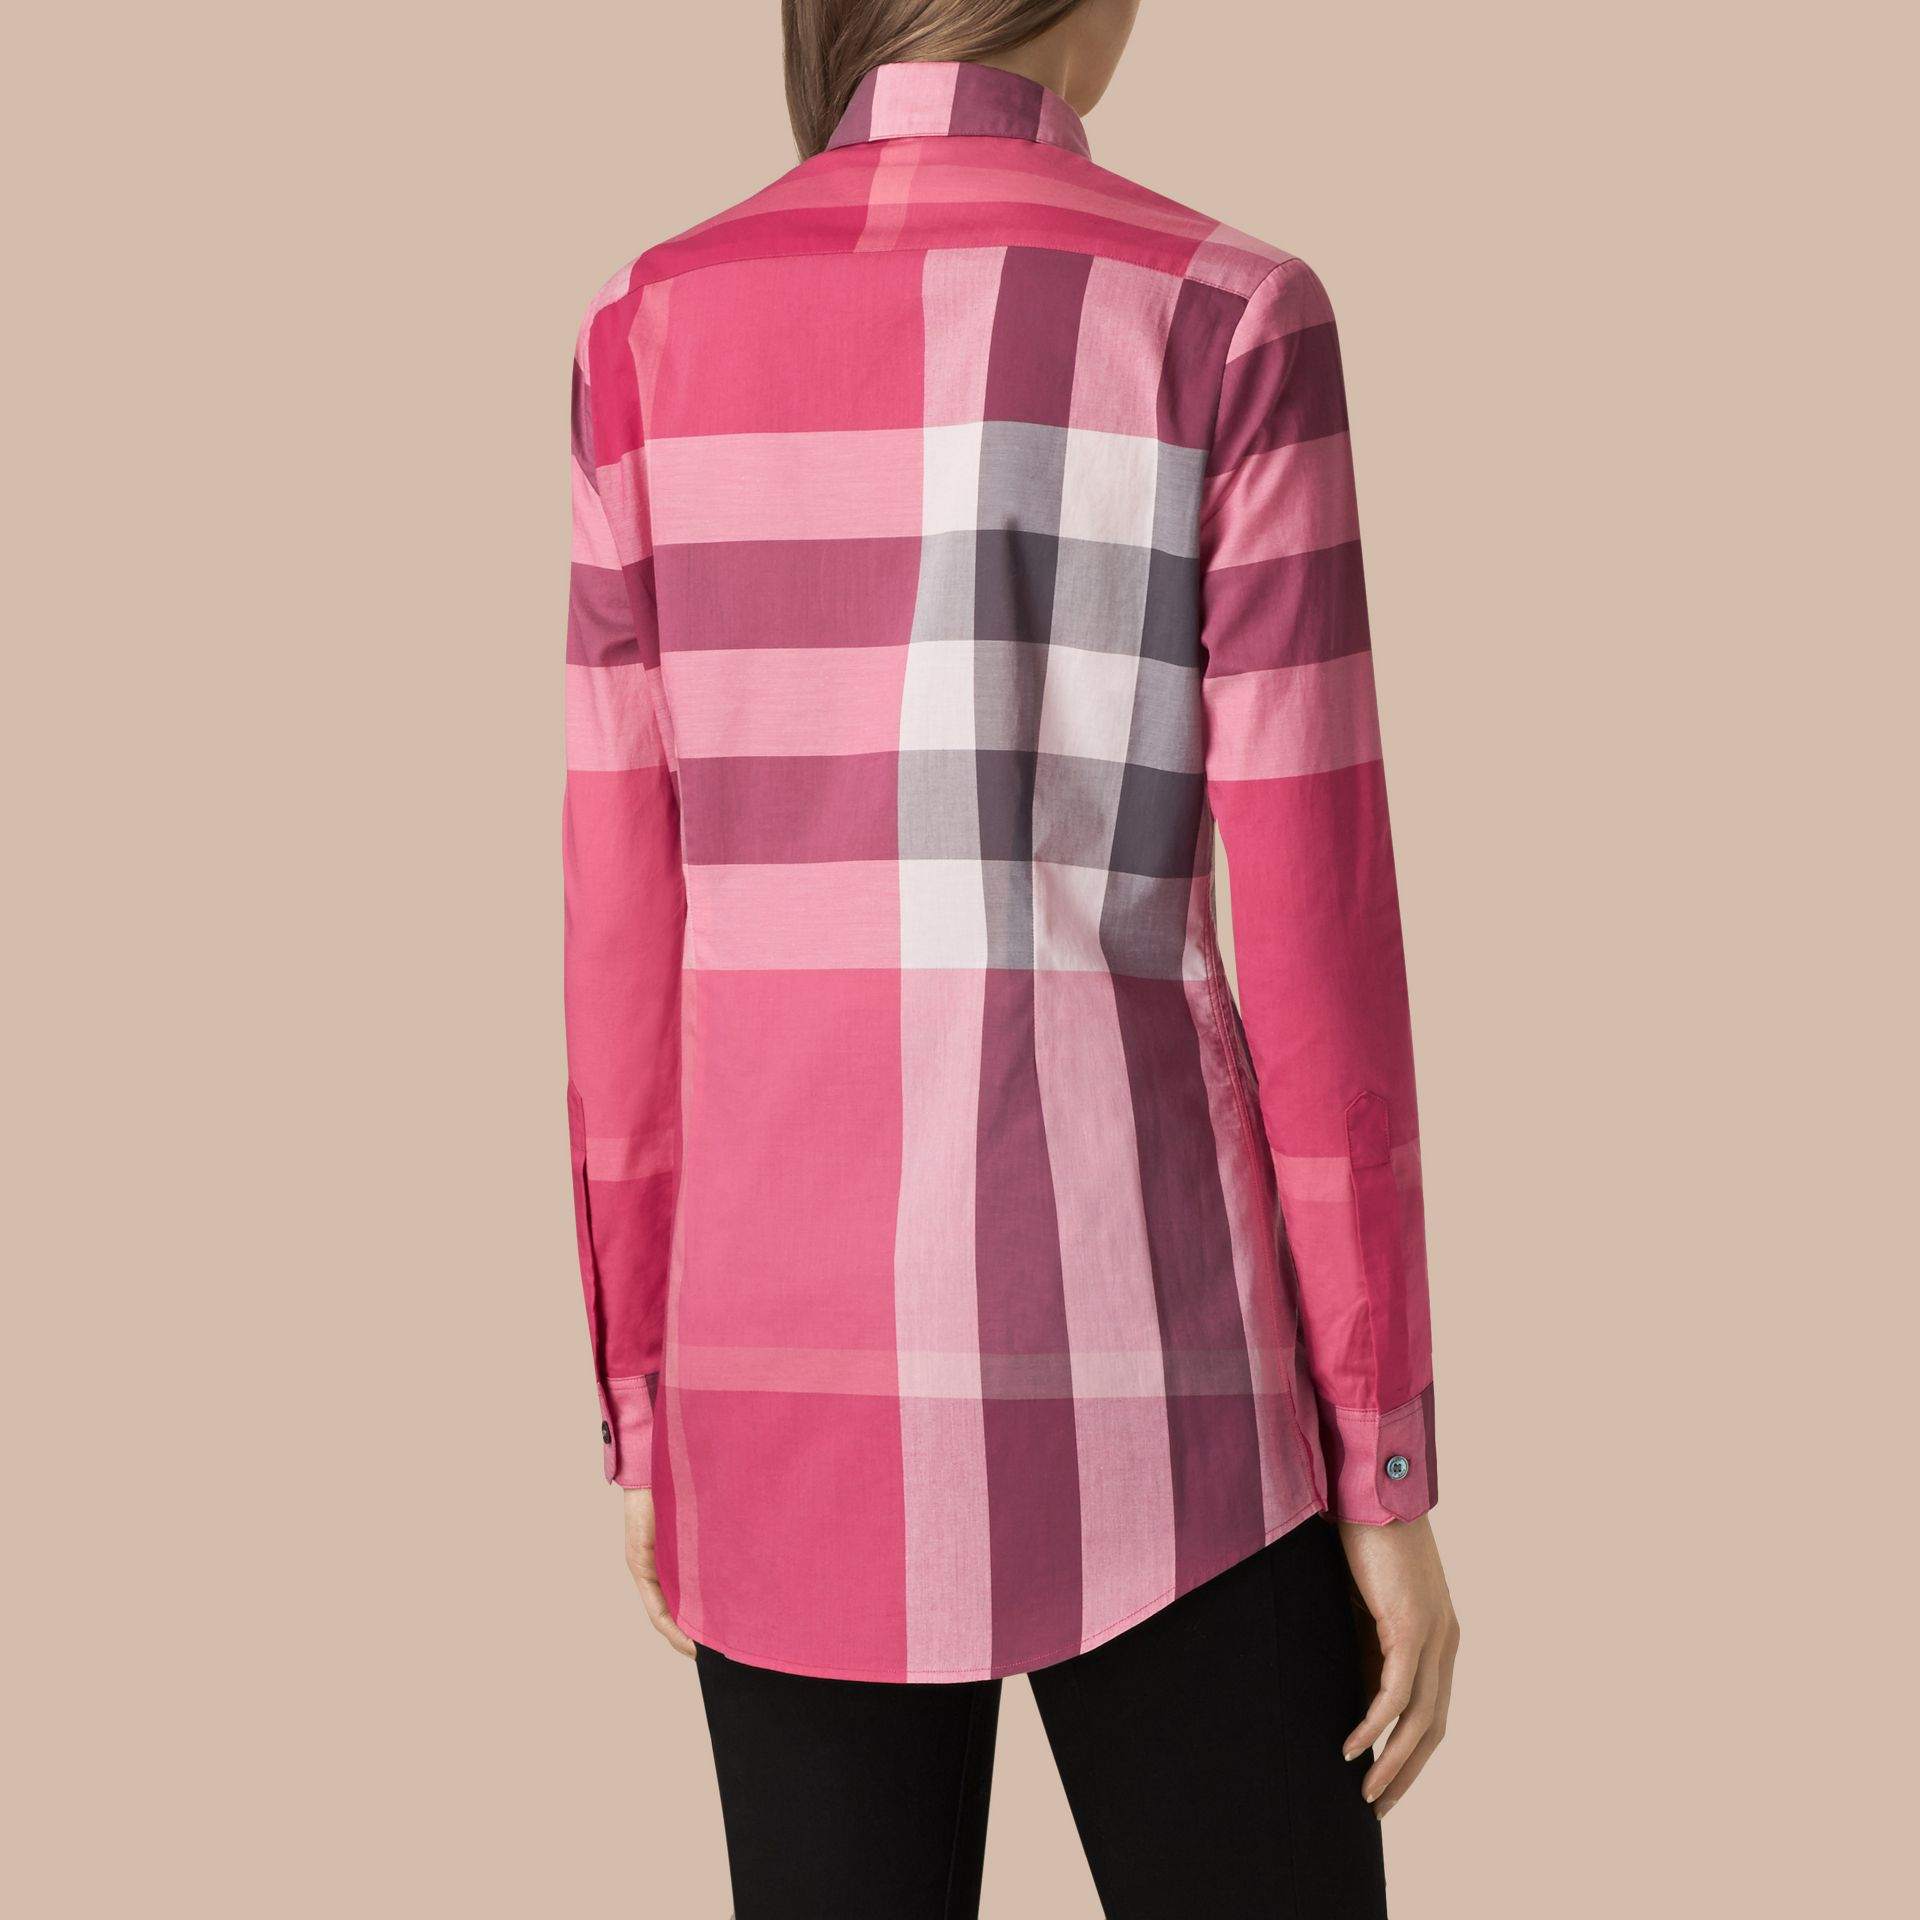 Crimson pink Check Cotton Shirt Crimson Pink - gallery image 3